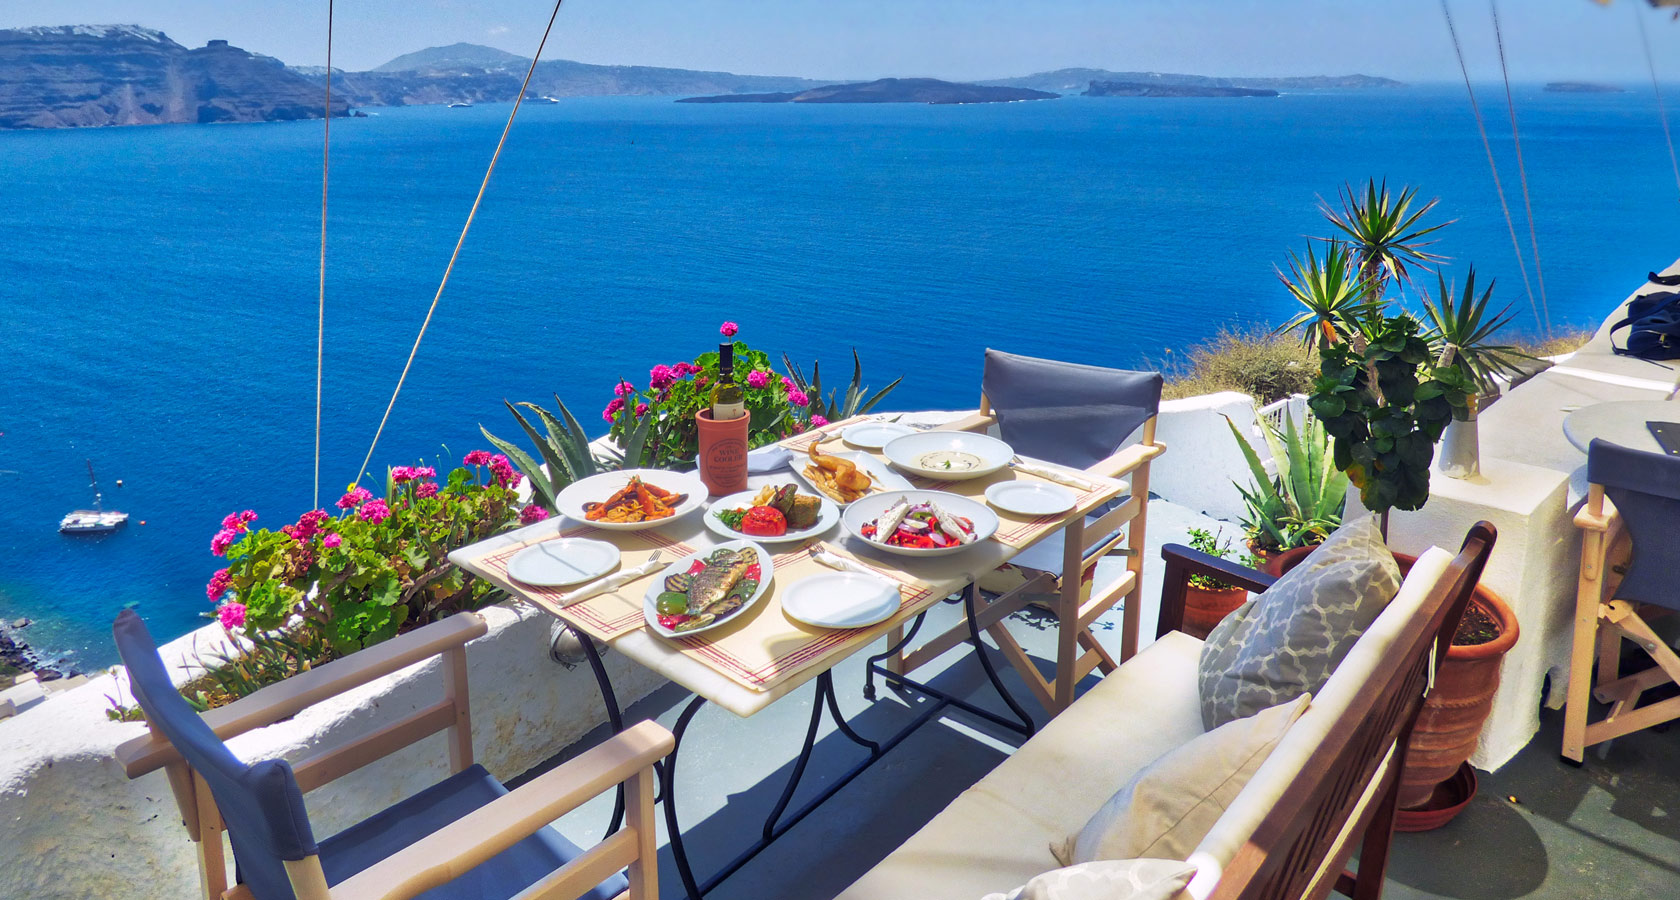 218° Santorini Café Restaurant in Oia – Exceptional Sea View